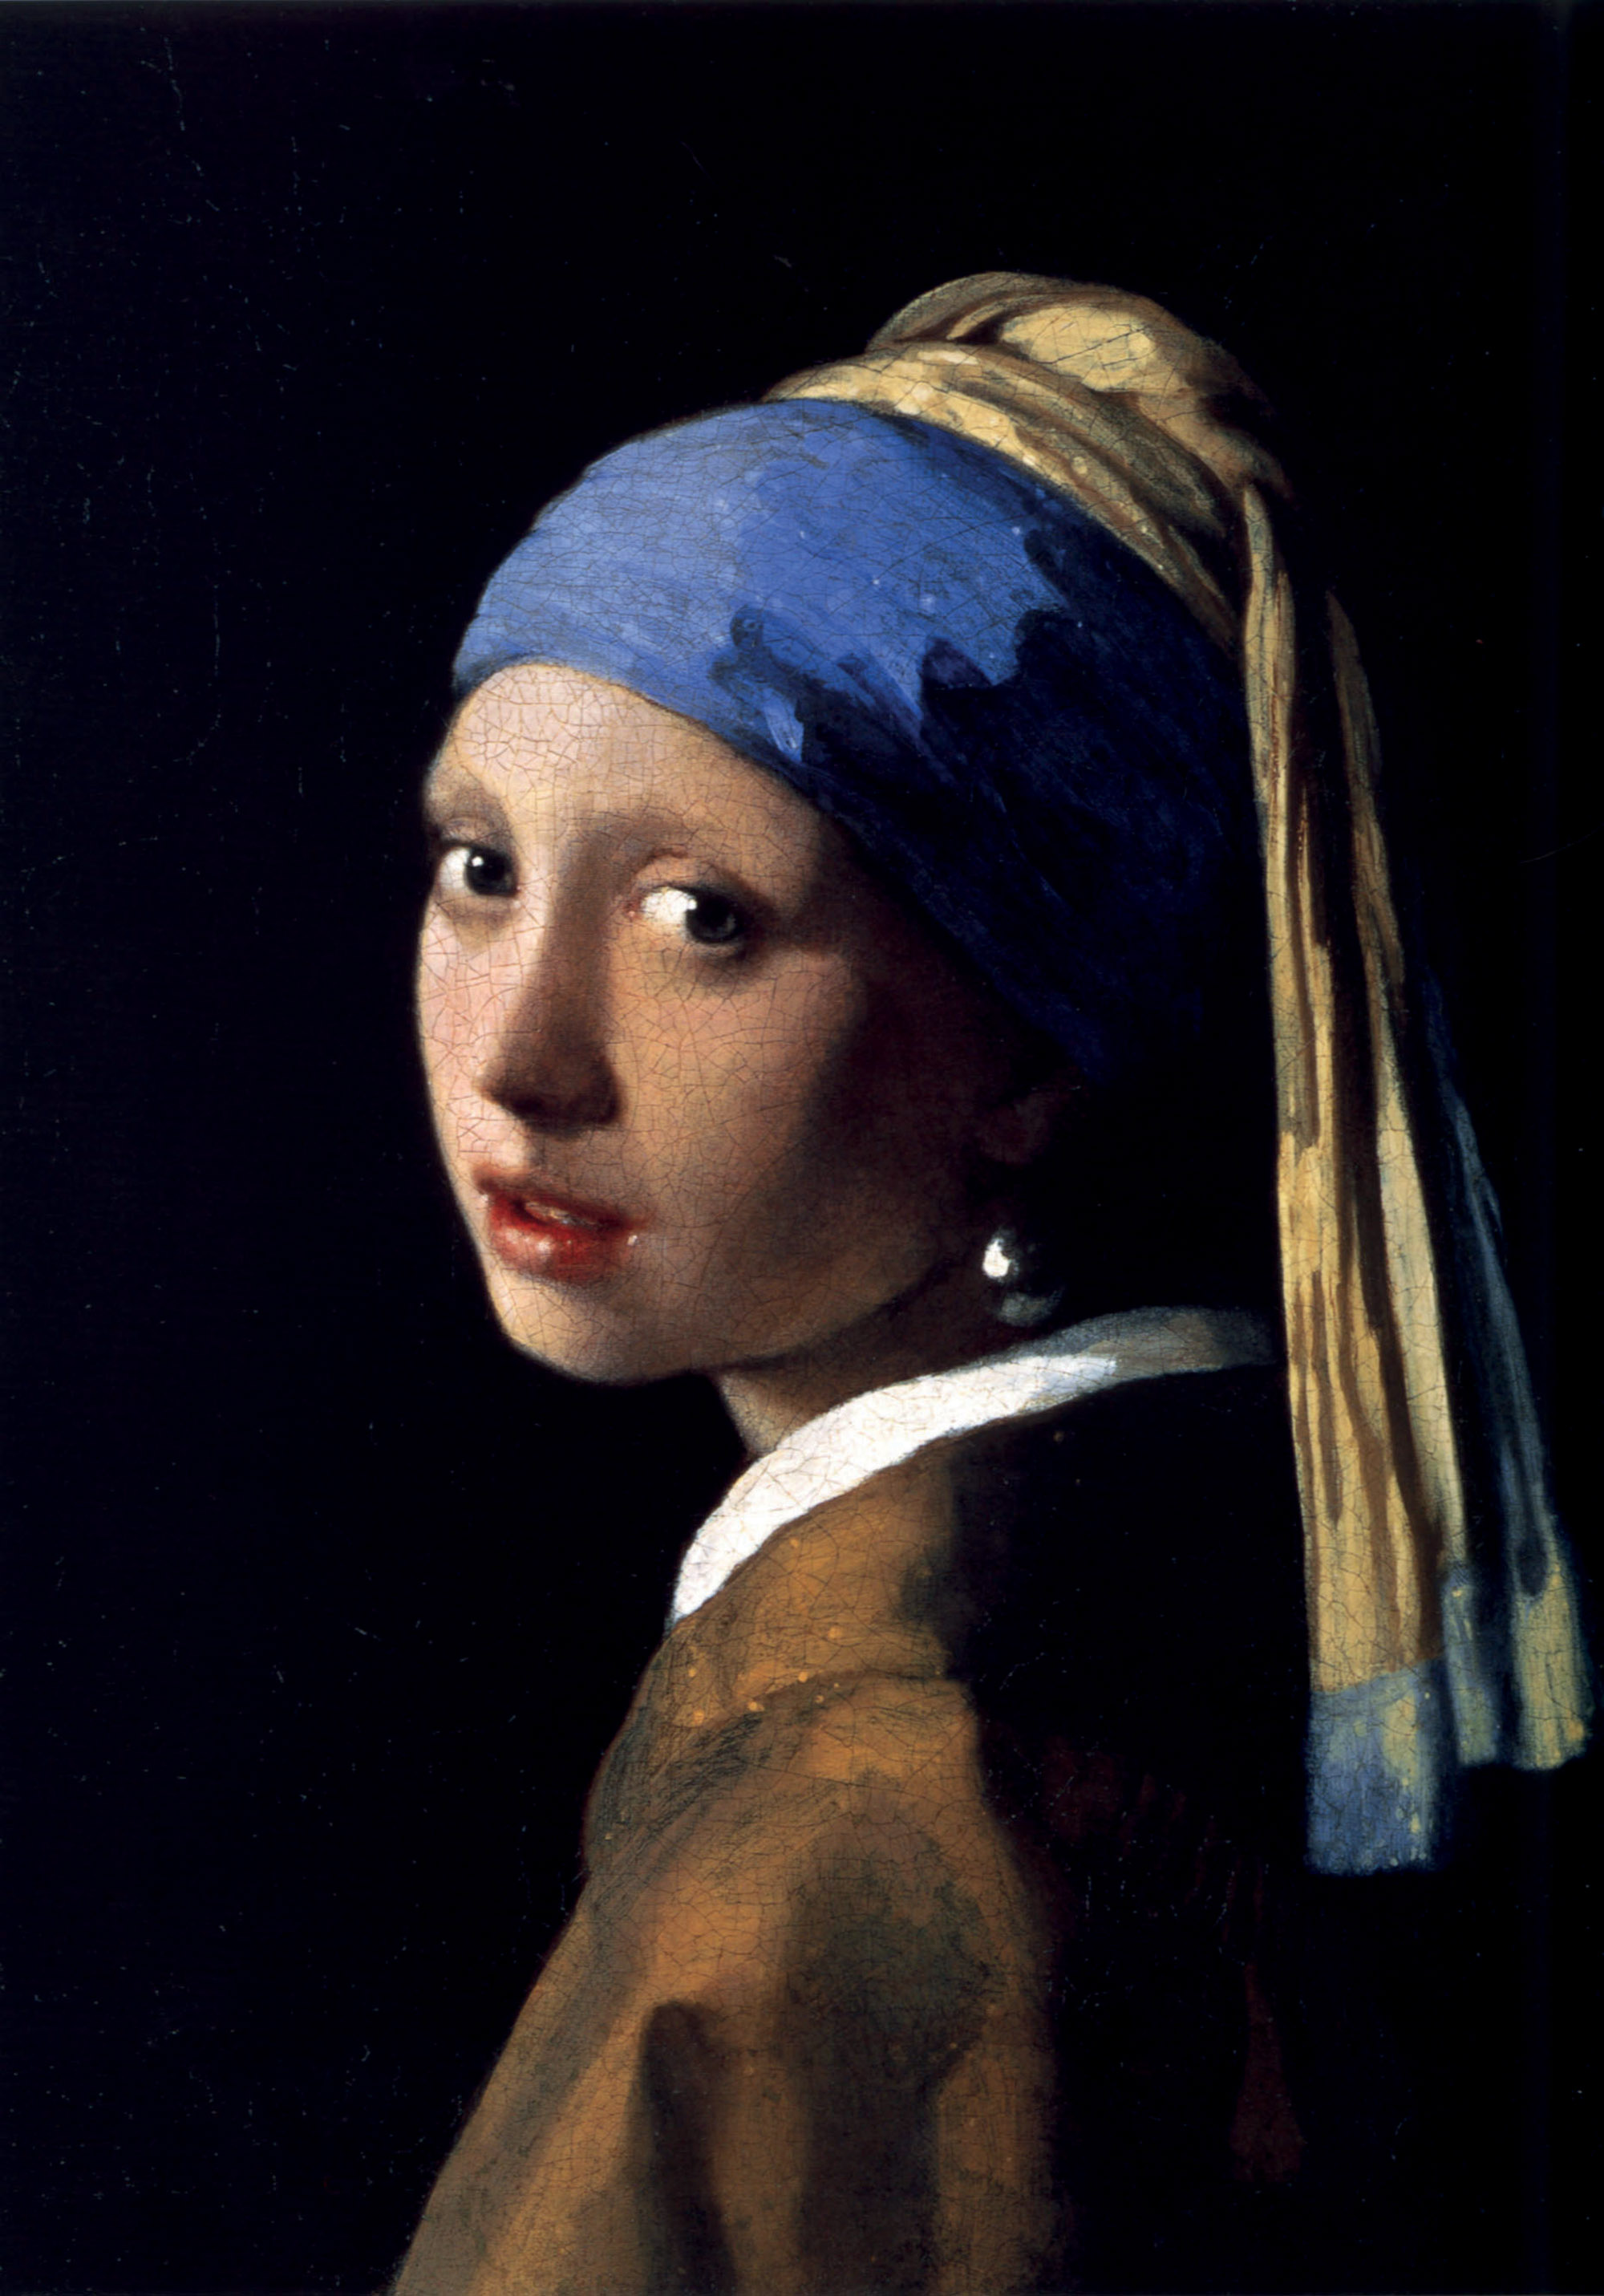 tác phẩm The Girl with the pearl earring